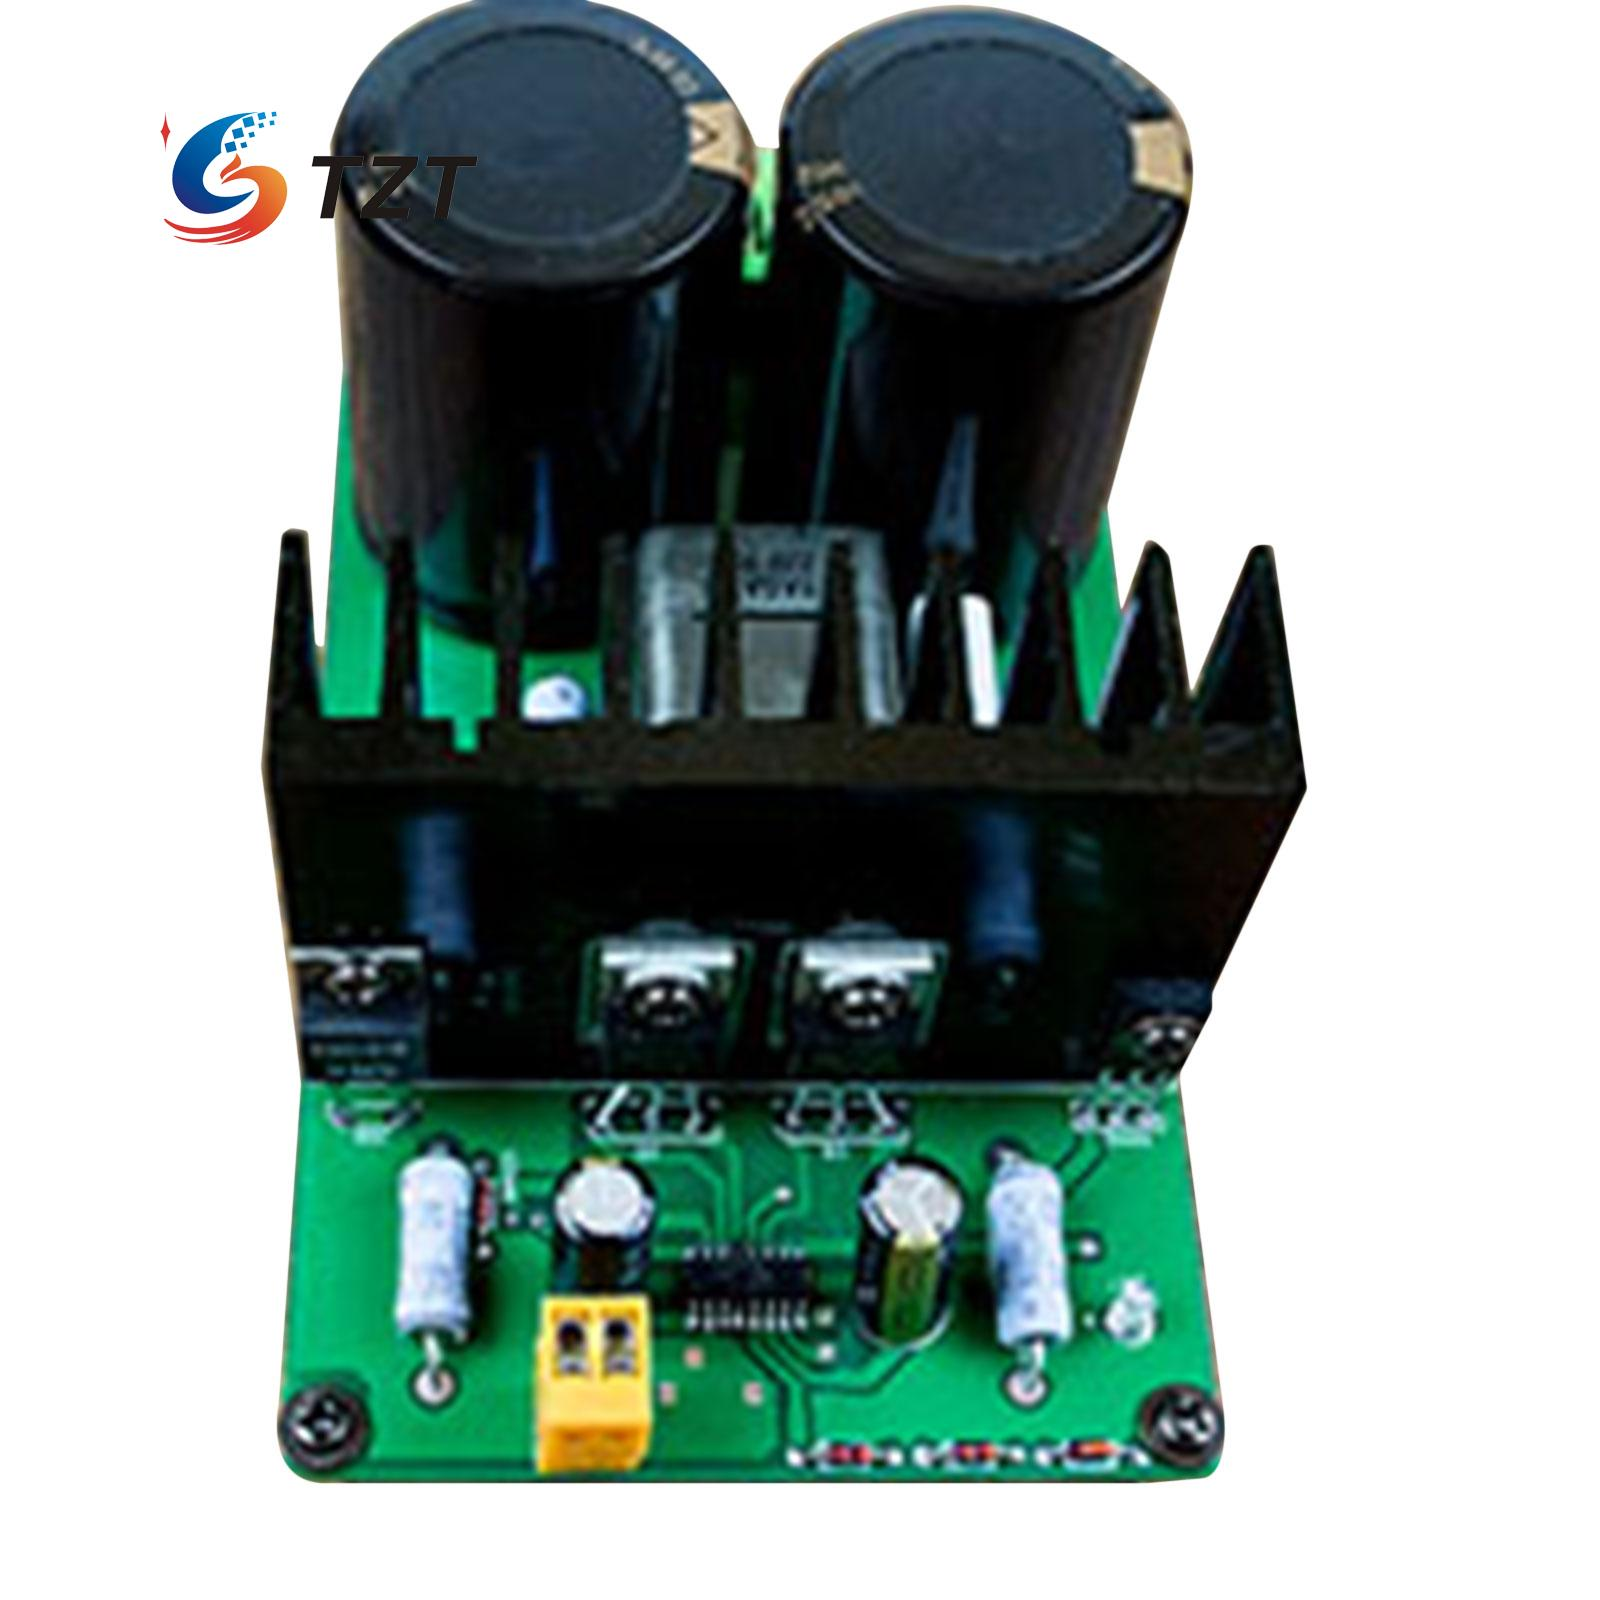 IRAUD200 Premium Class D Digital Amplifier Board IRS2092S 500W Amp Finished Board Deluxe Edition